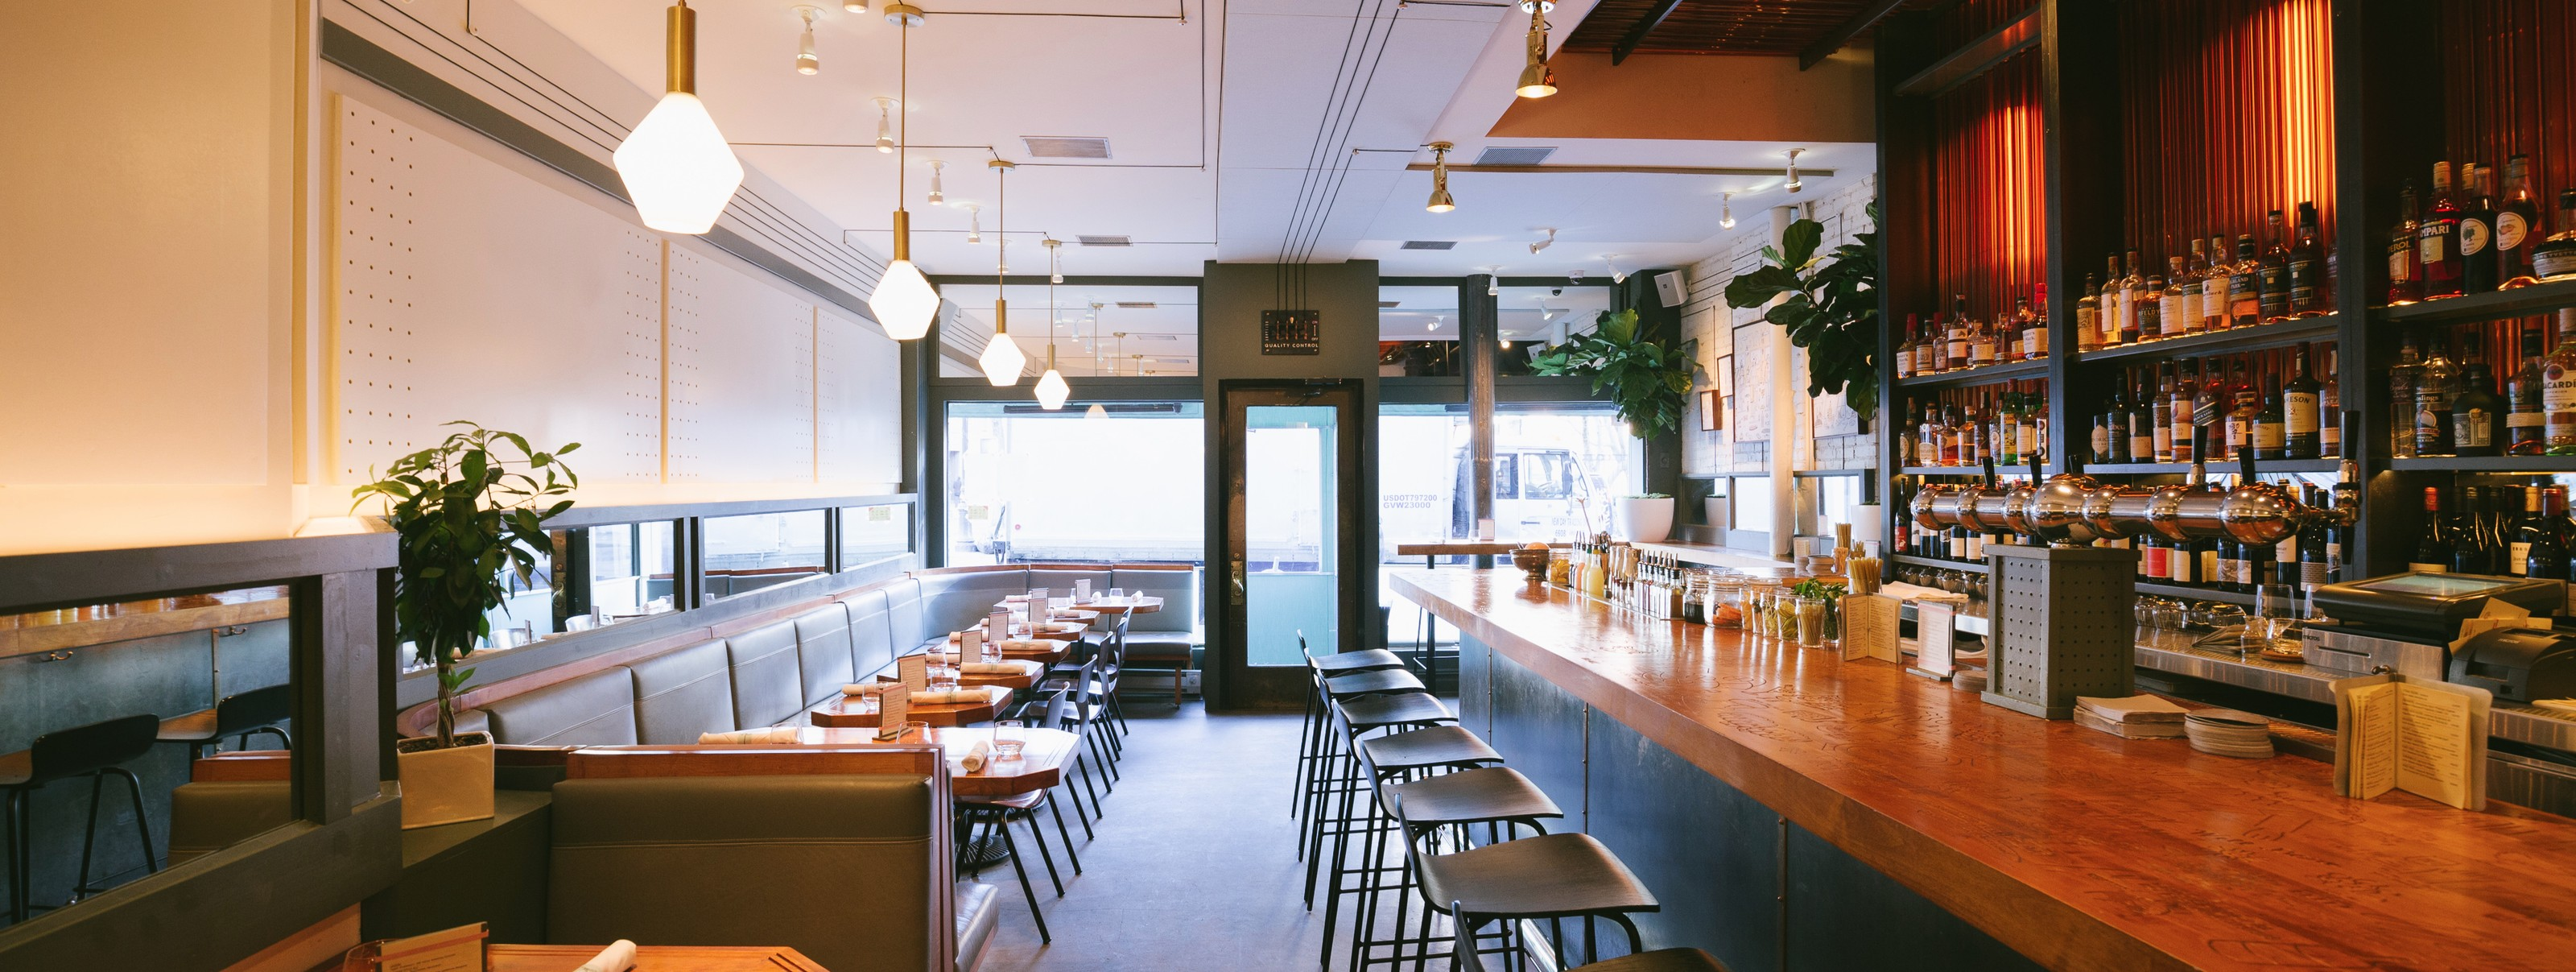 The Best Restaurants In The West Village West Village